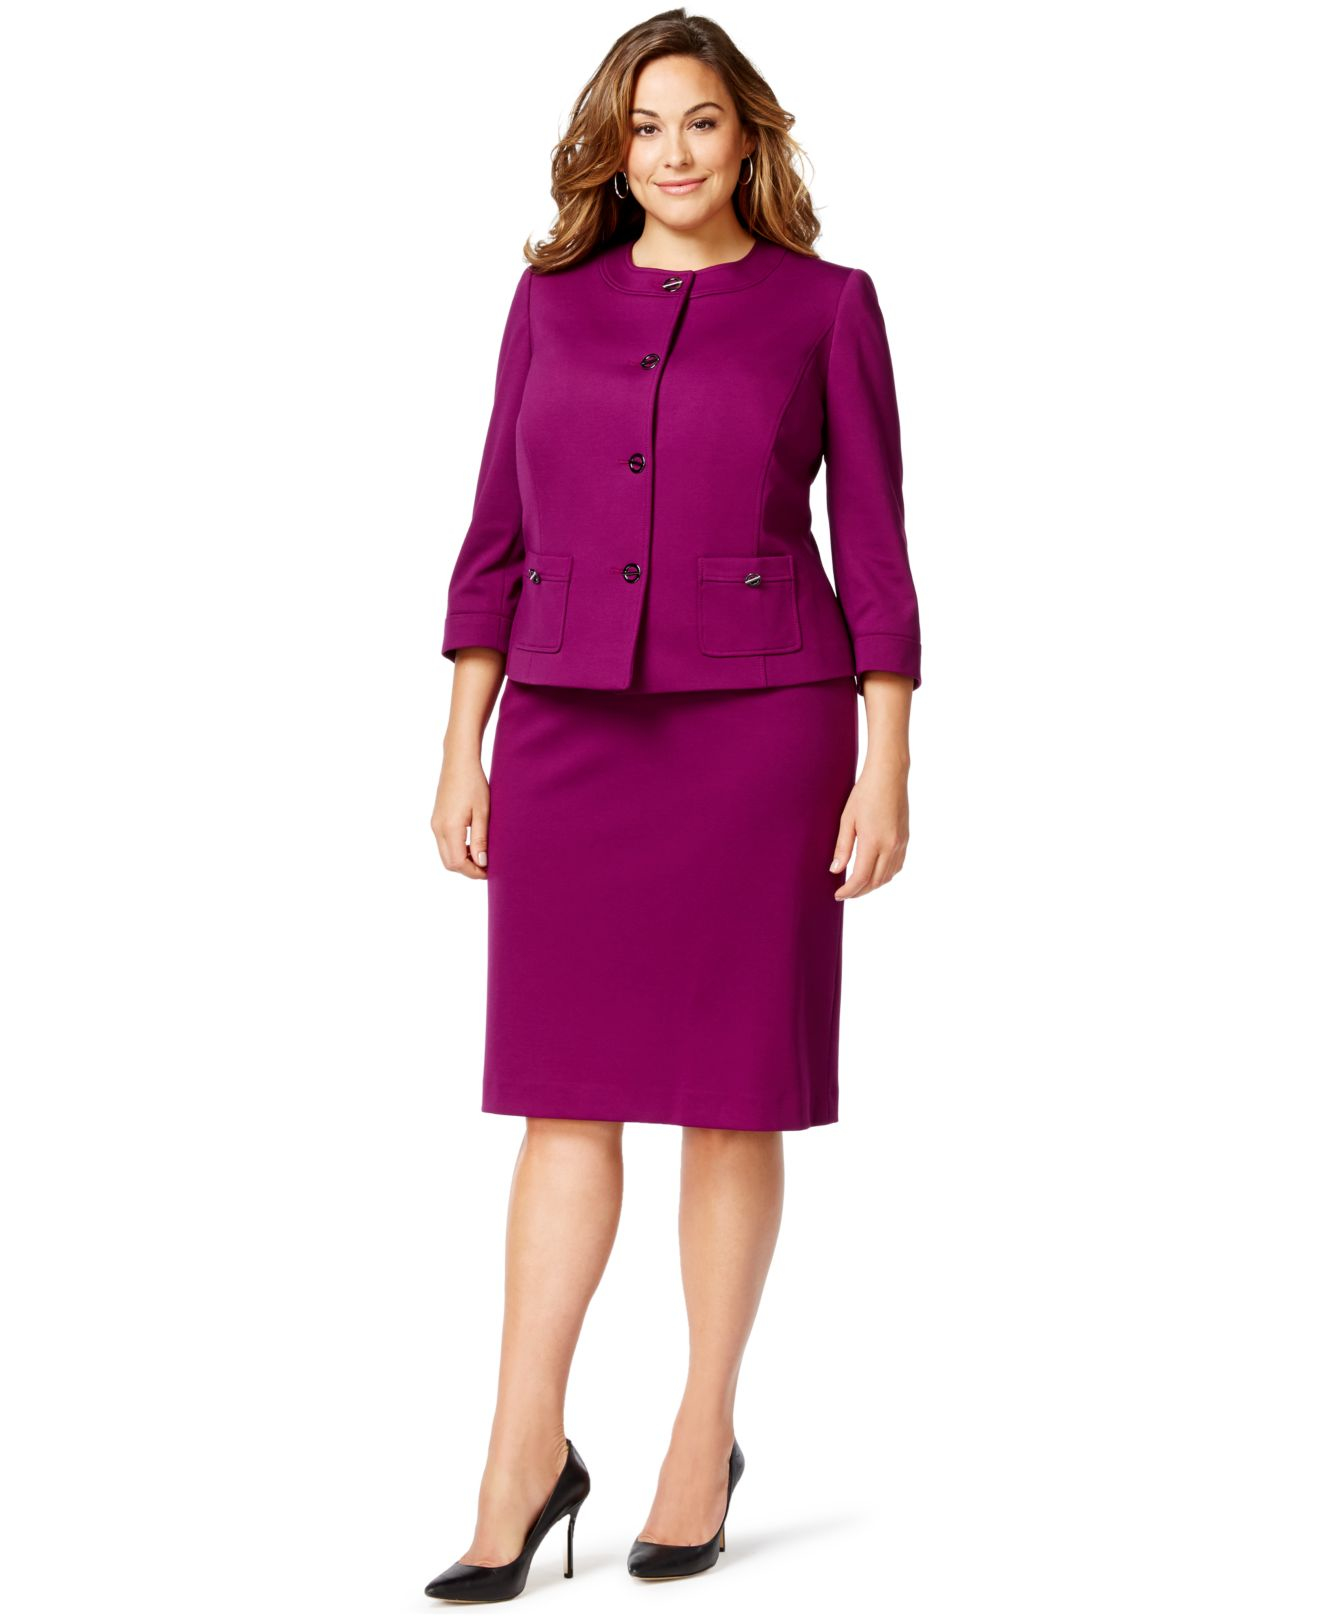 united states purchase authentic variety styles of 2019 Women's Purple Plus Size Ponte Turn-key Skirt Suit